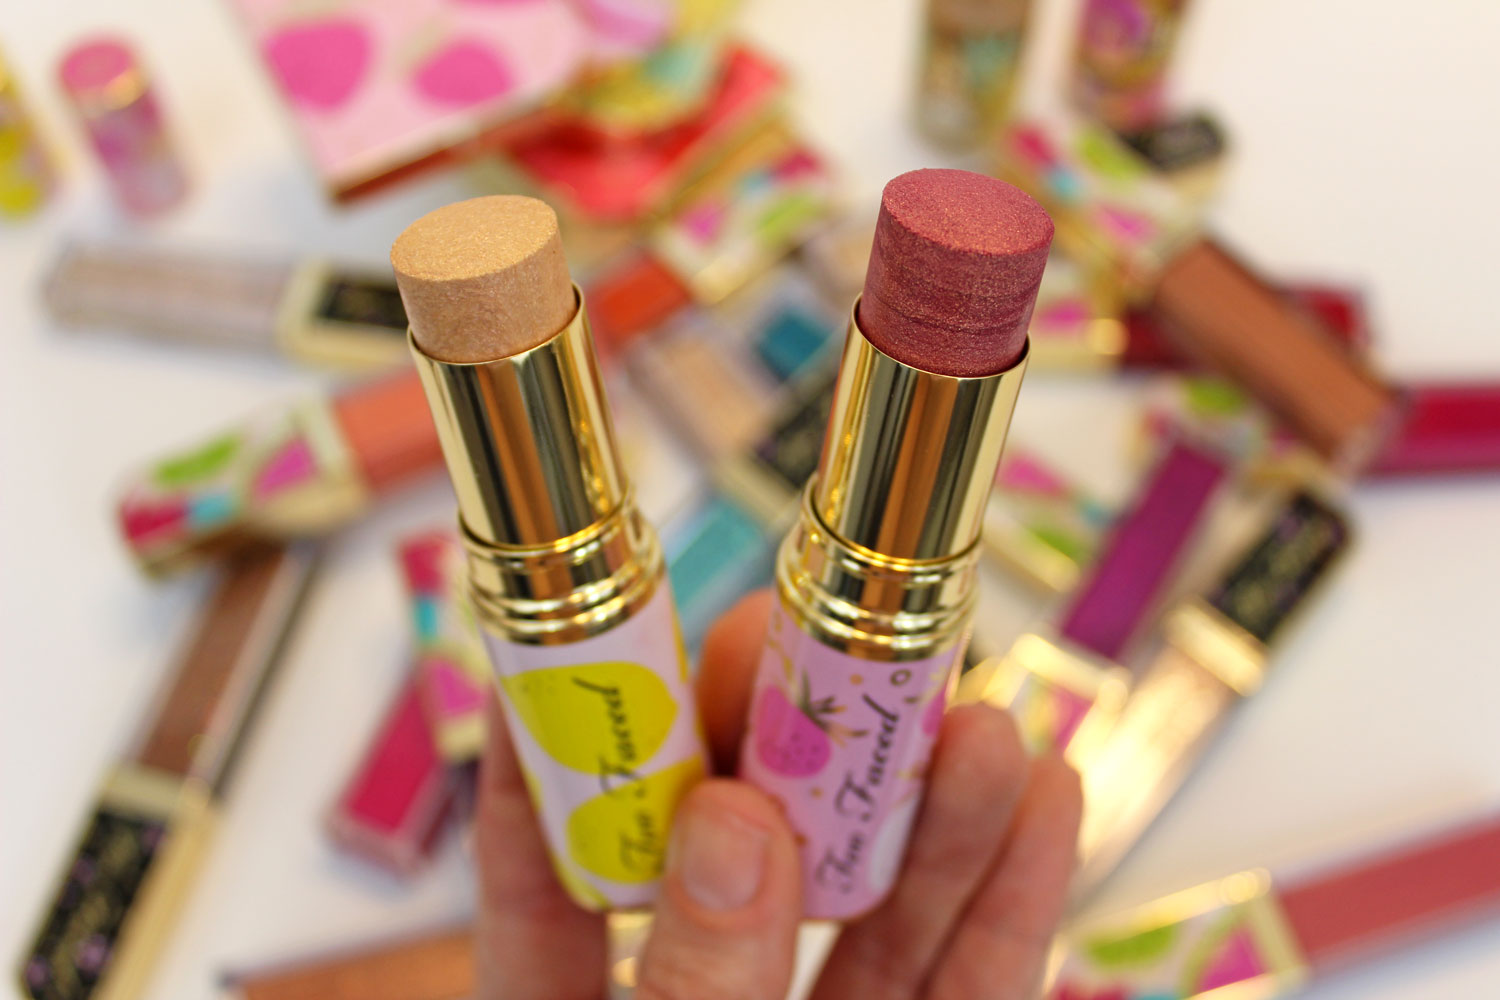 Too Faced Tutti Frutti Frosted Fruits Highlighter Sticks review and swatches by cruelty free blog My Beauty Bunny